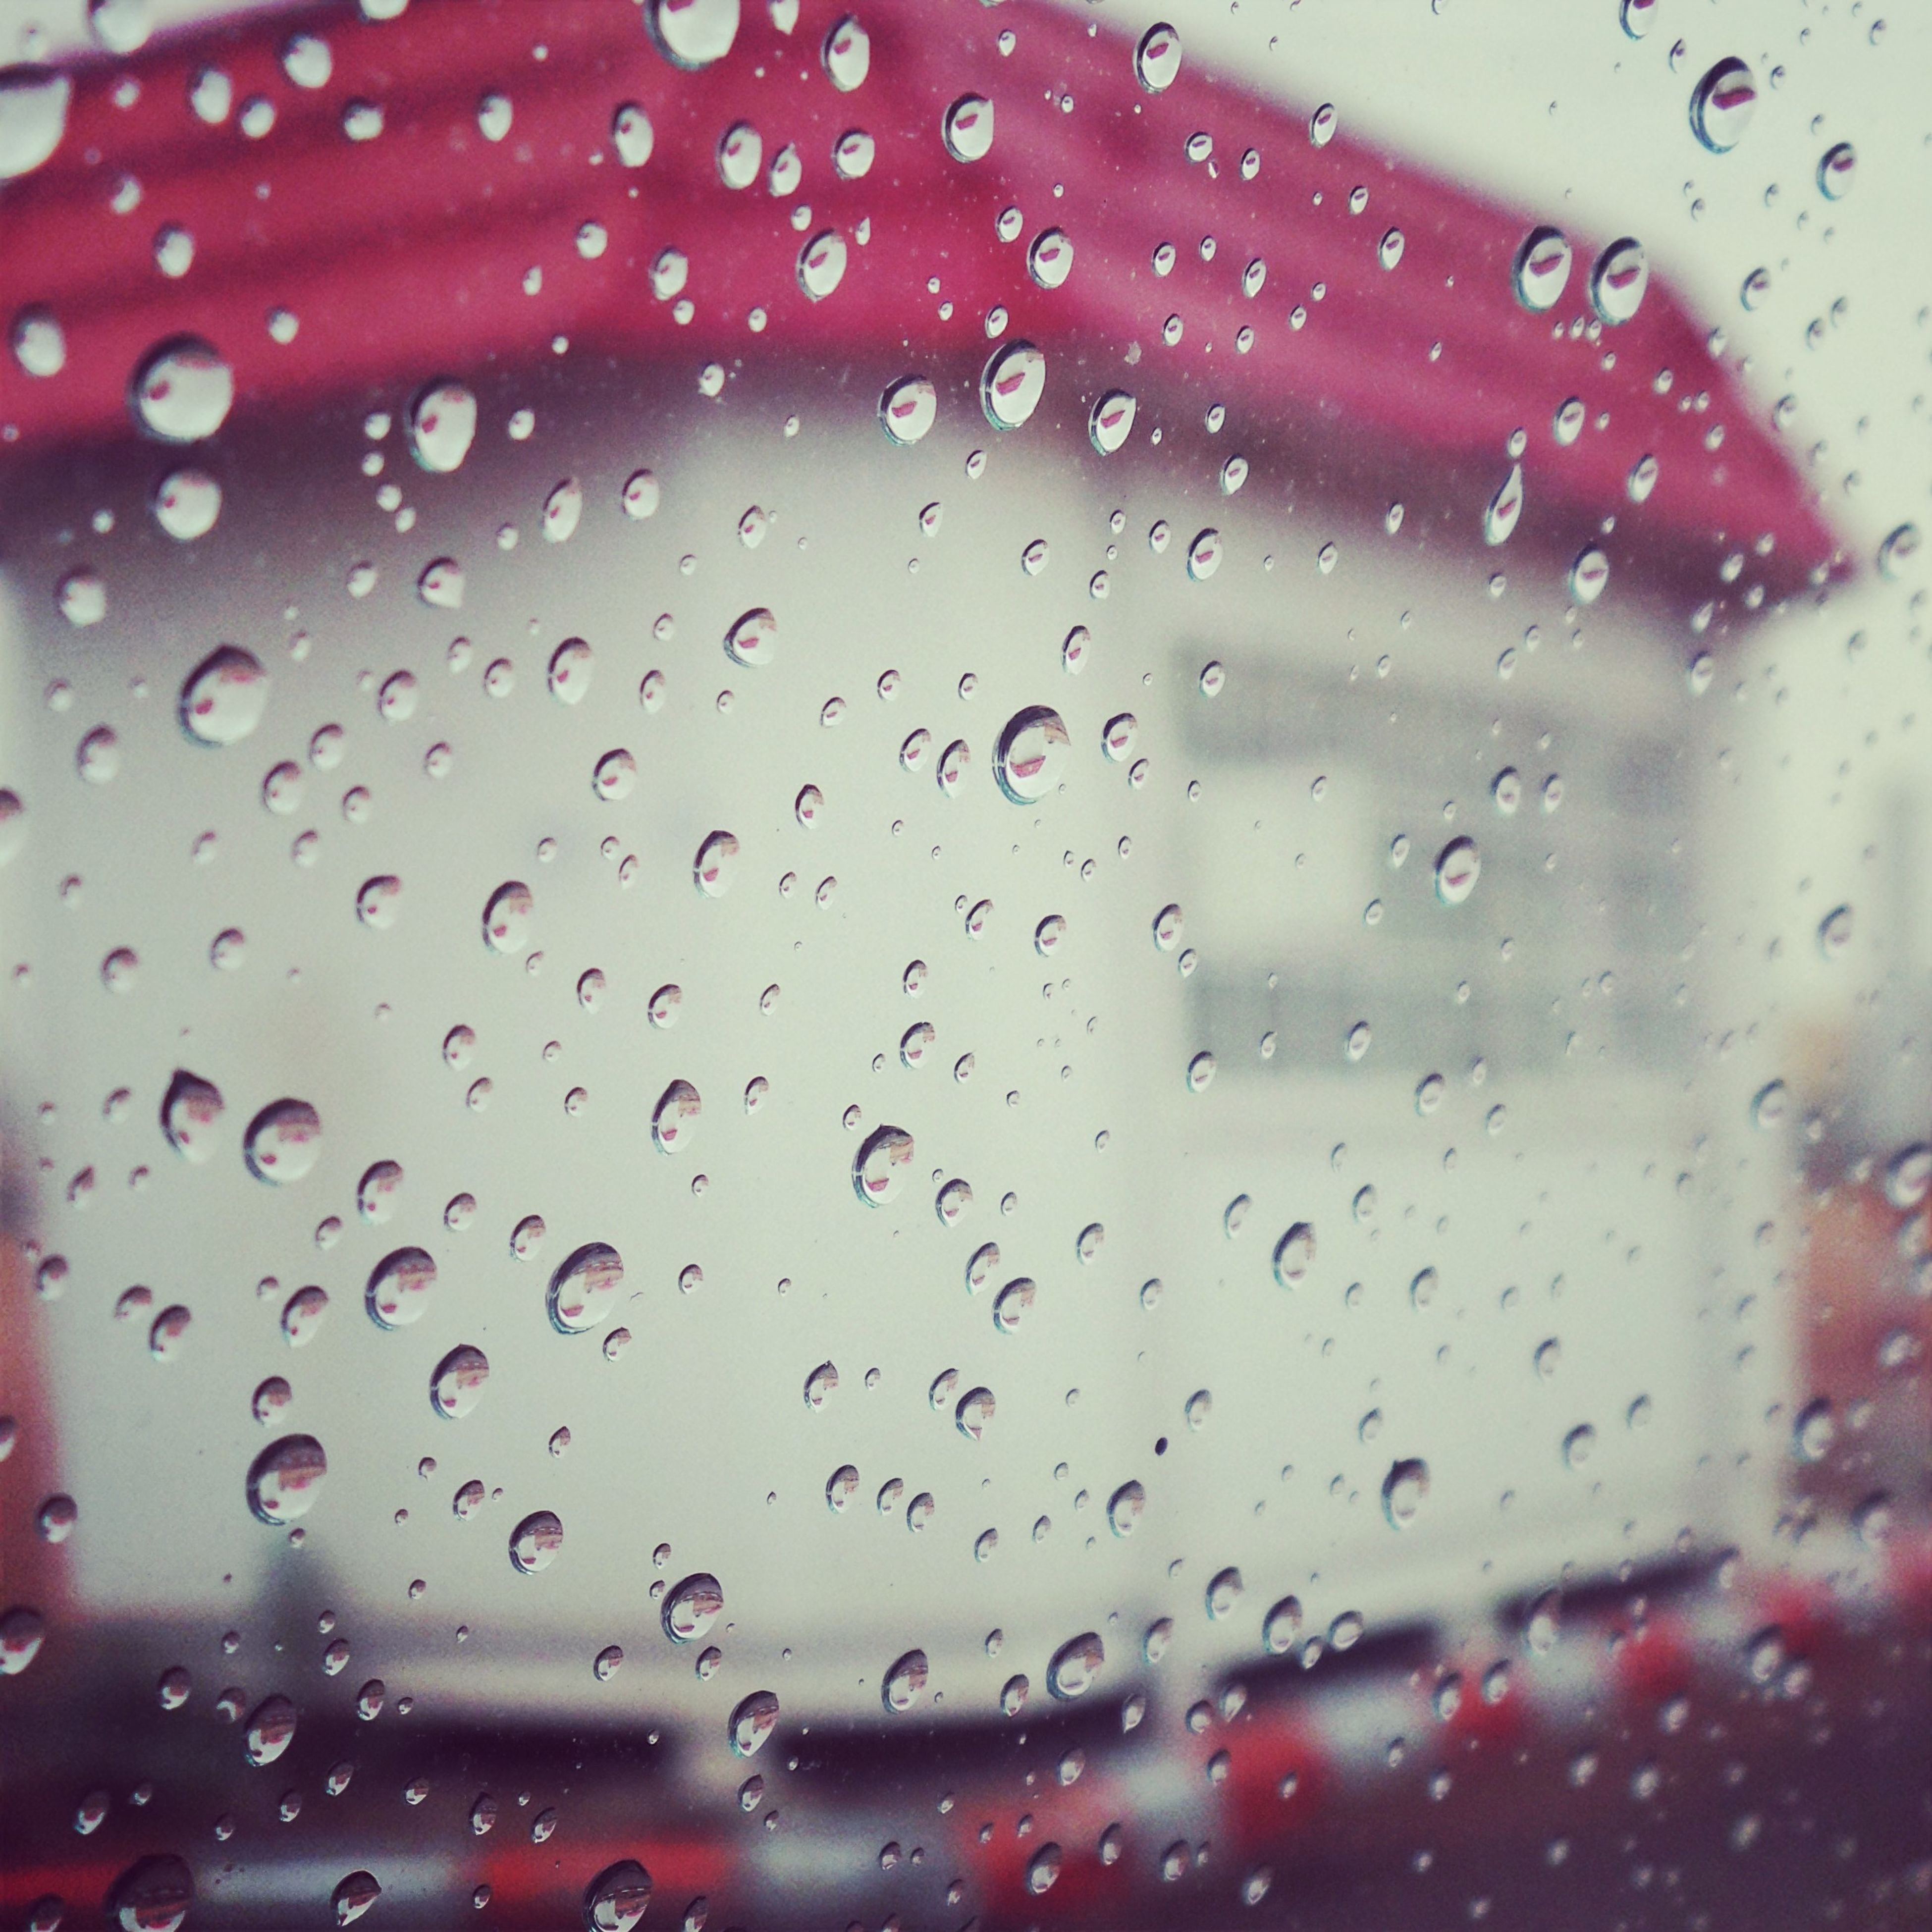 drop, wet, transparent, window, rain, glass - material, indoors, transportation, water, car, mode of transport, weather, vehicle interior, raindrop, close-up, backgrounds, red, full frame, season, land vehicle